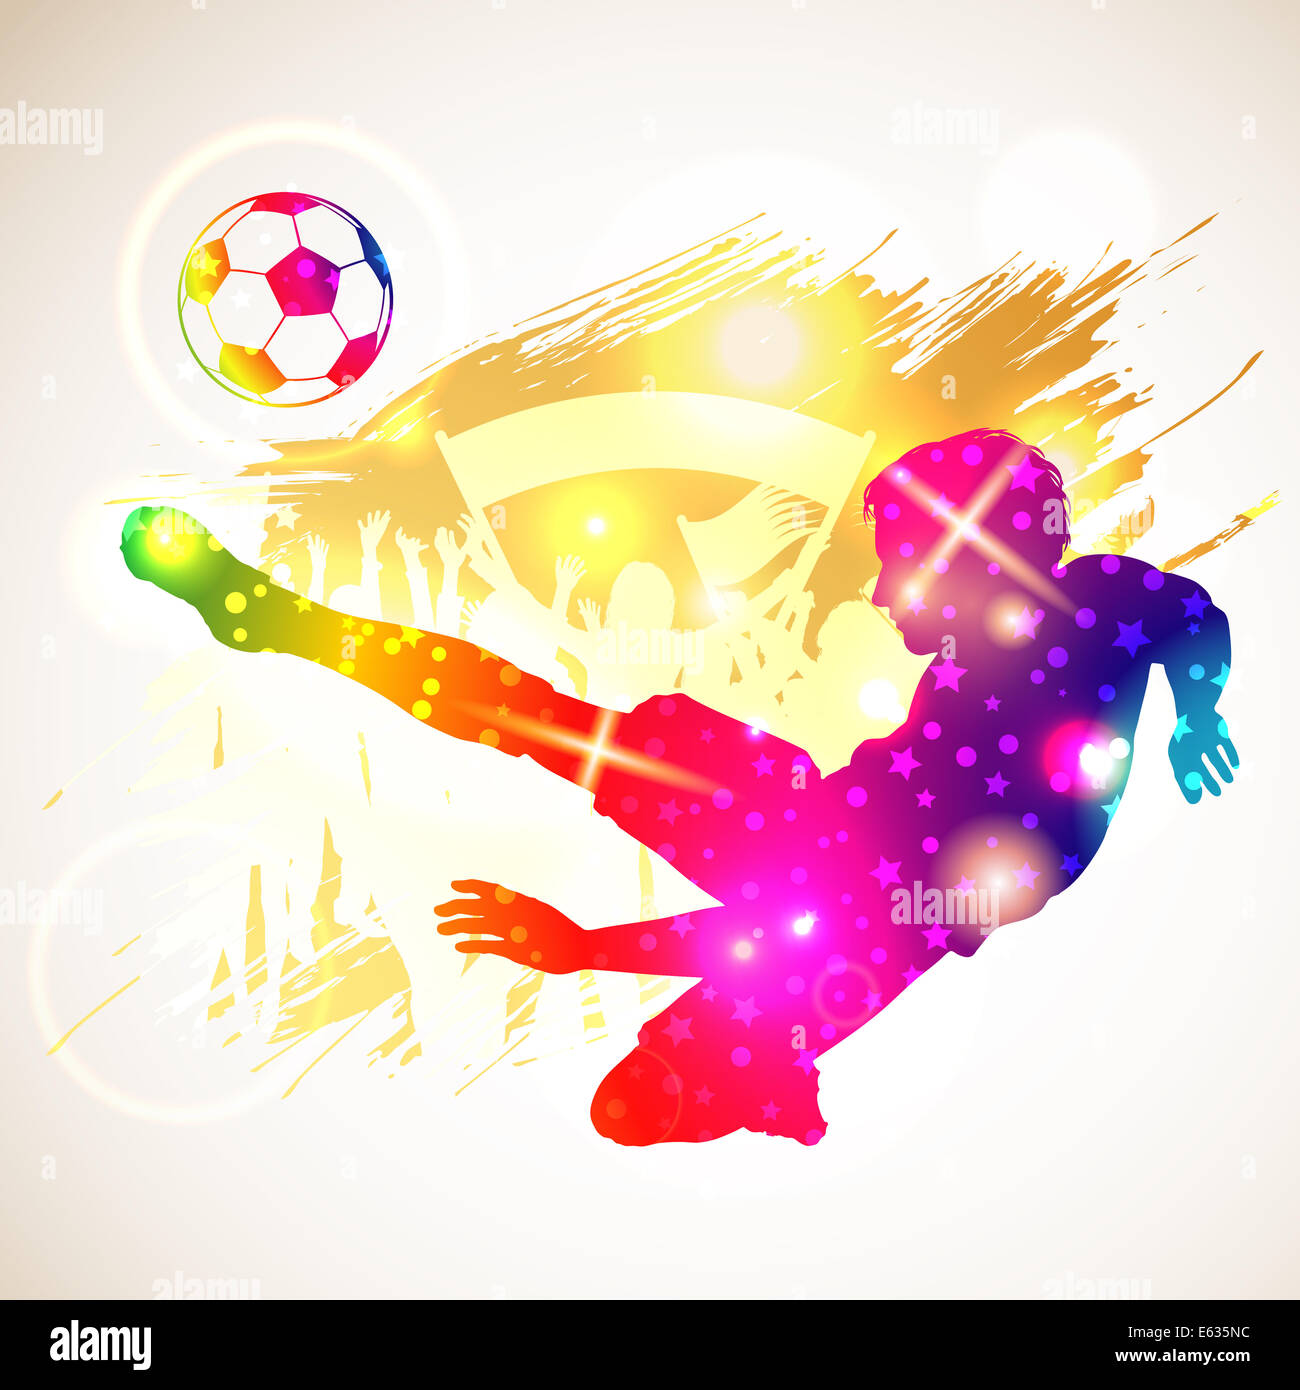 Bright Rainbow Silhouette Soccer Player and Fans on grunge background, illustration - Stock Image